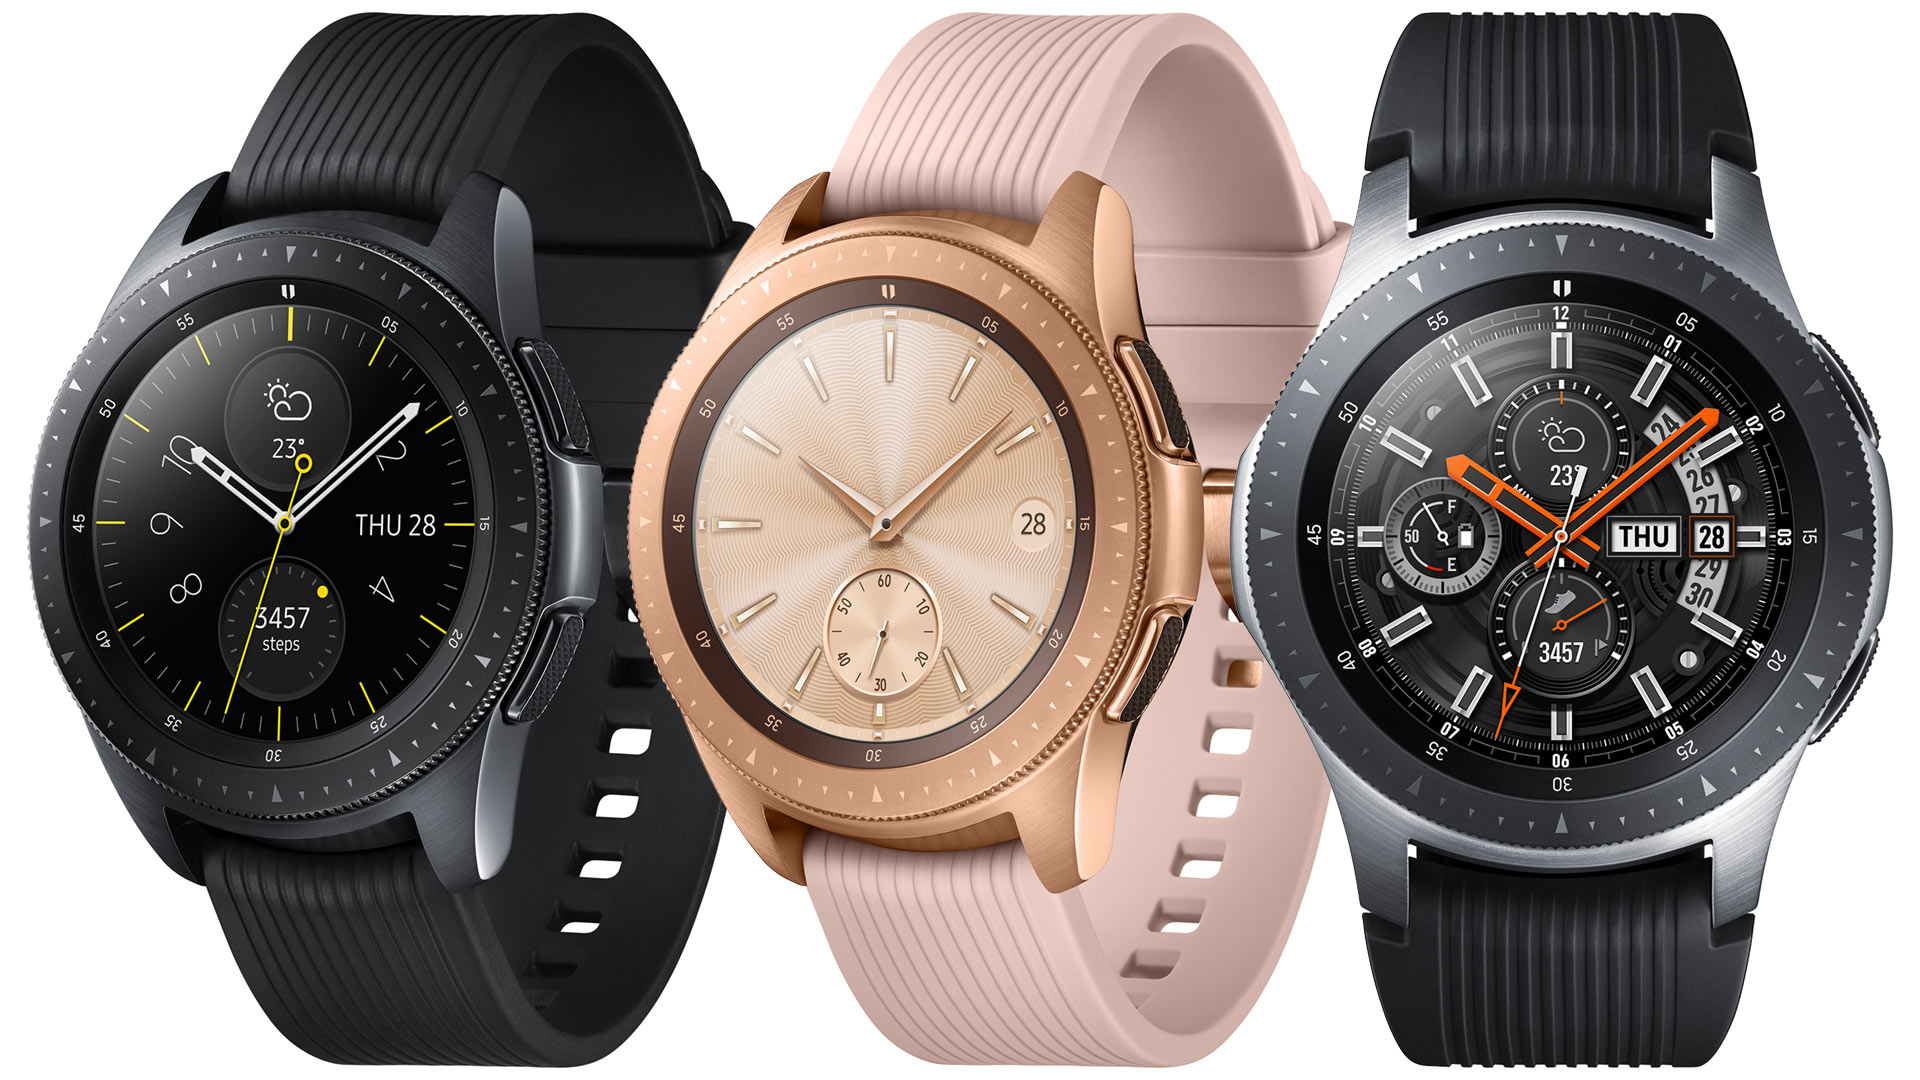 Samsung Galaxy Smartwatch For 2018 Focuses On Enhancing ...